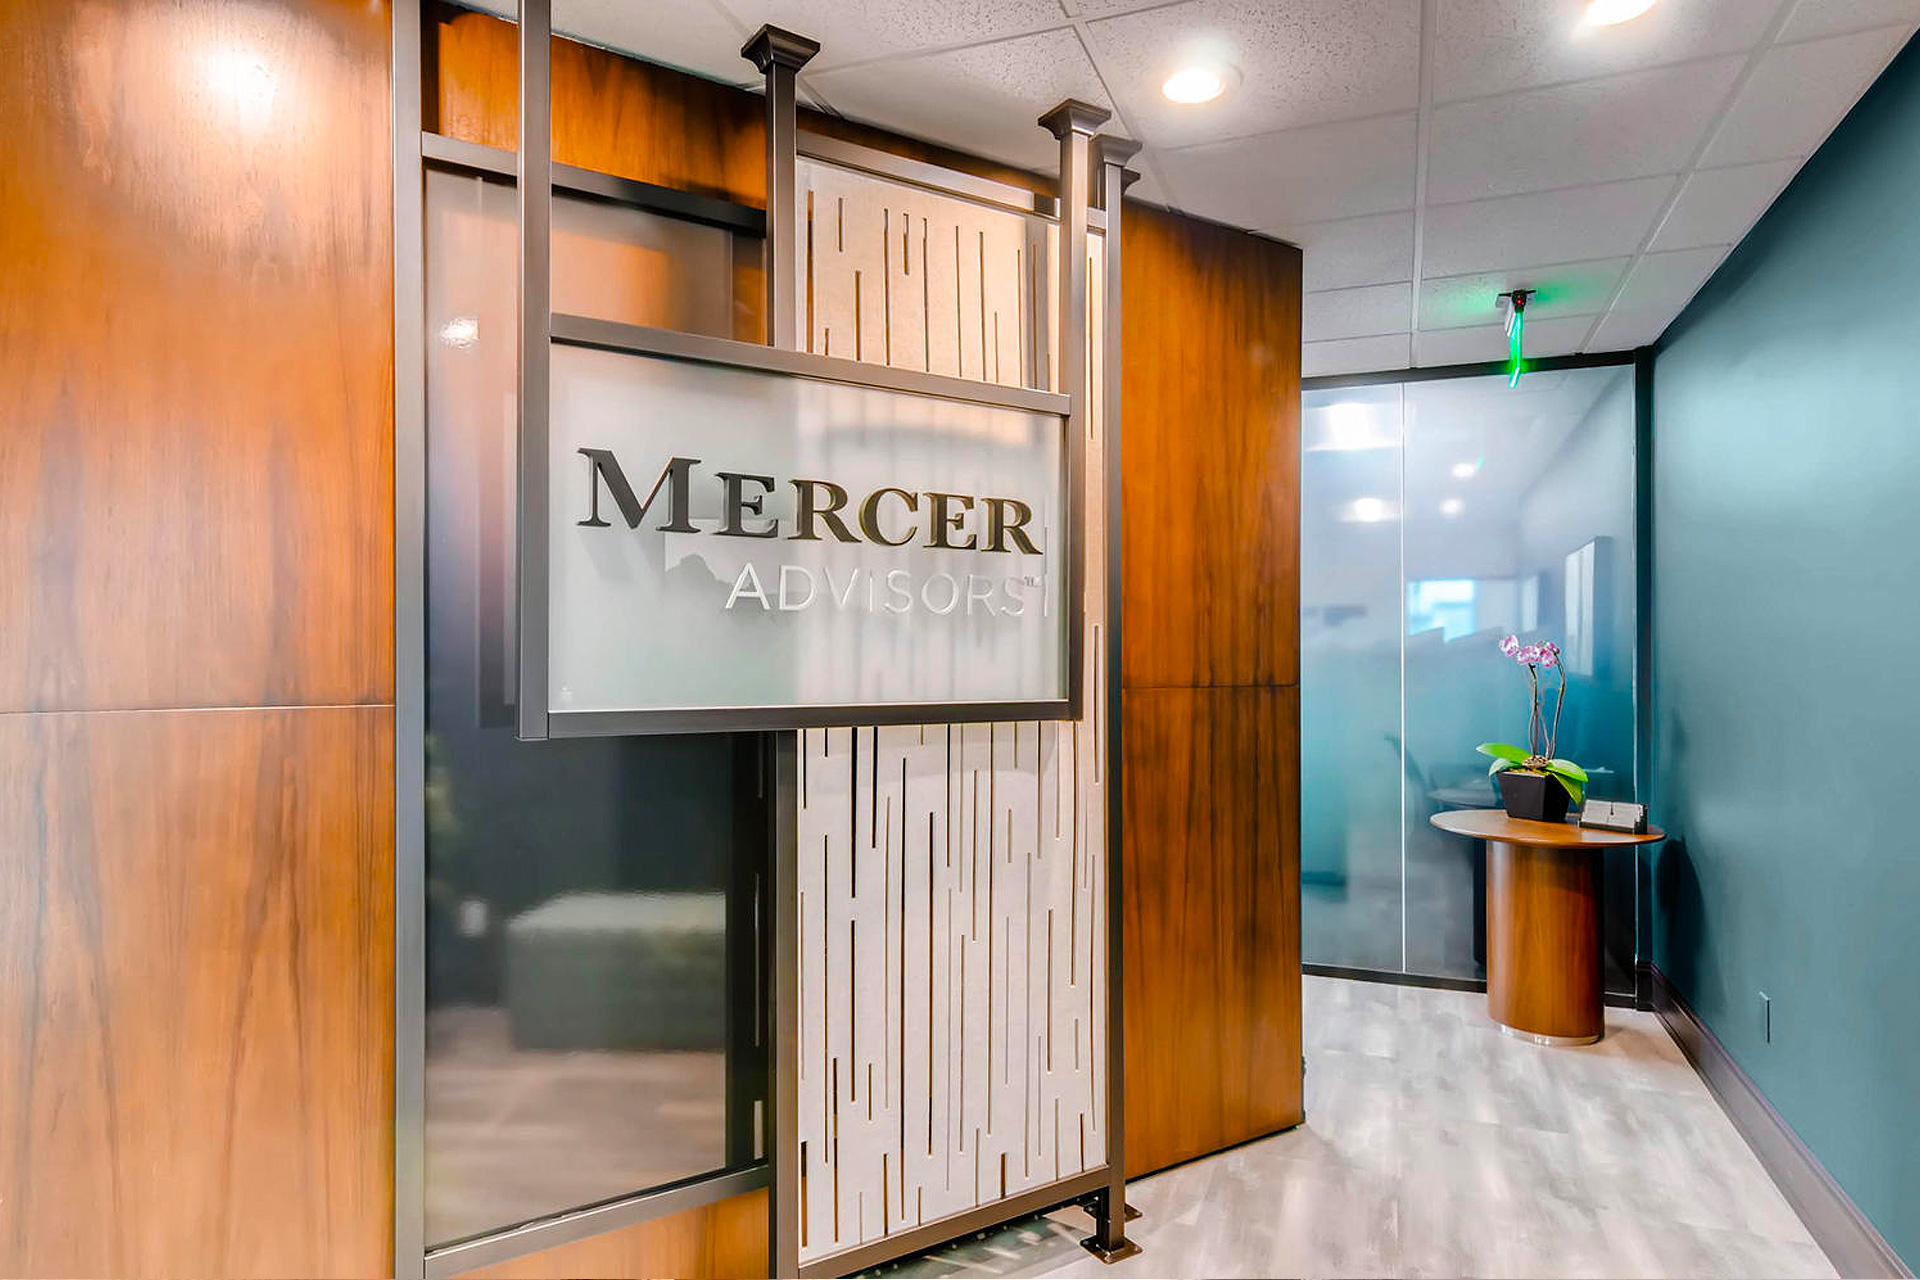 Project hero - Mercer Advisors